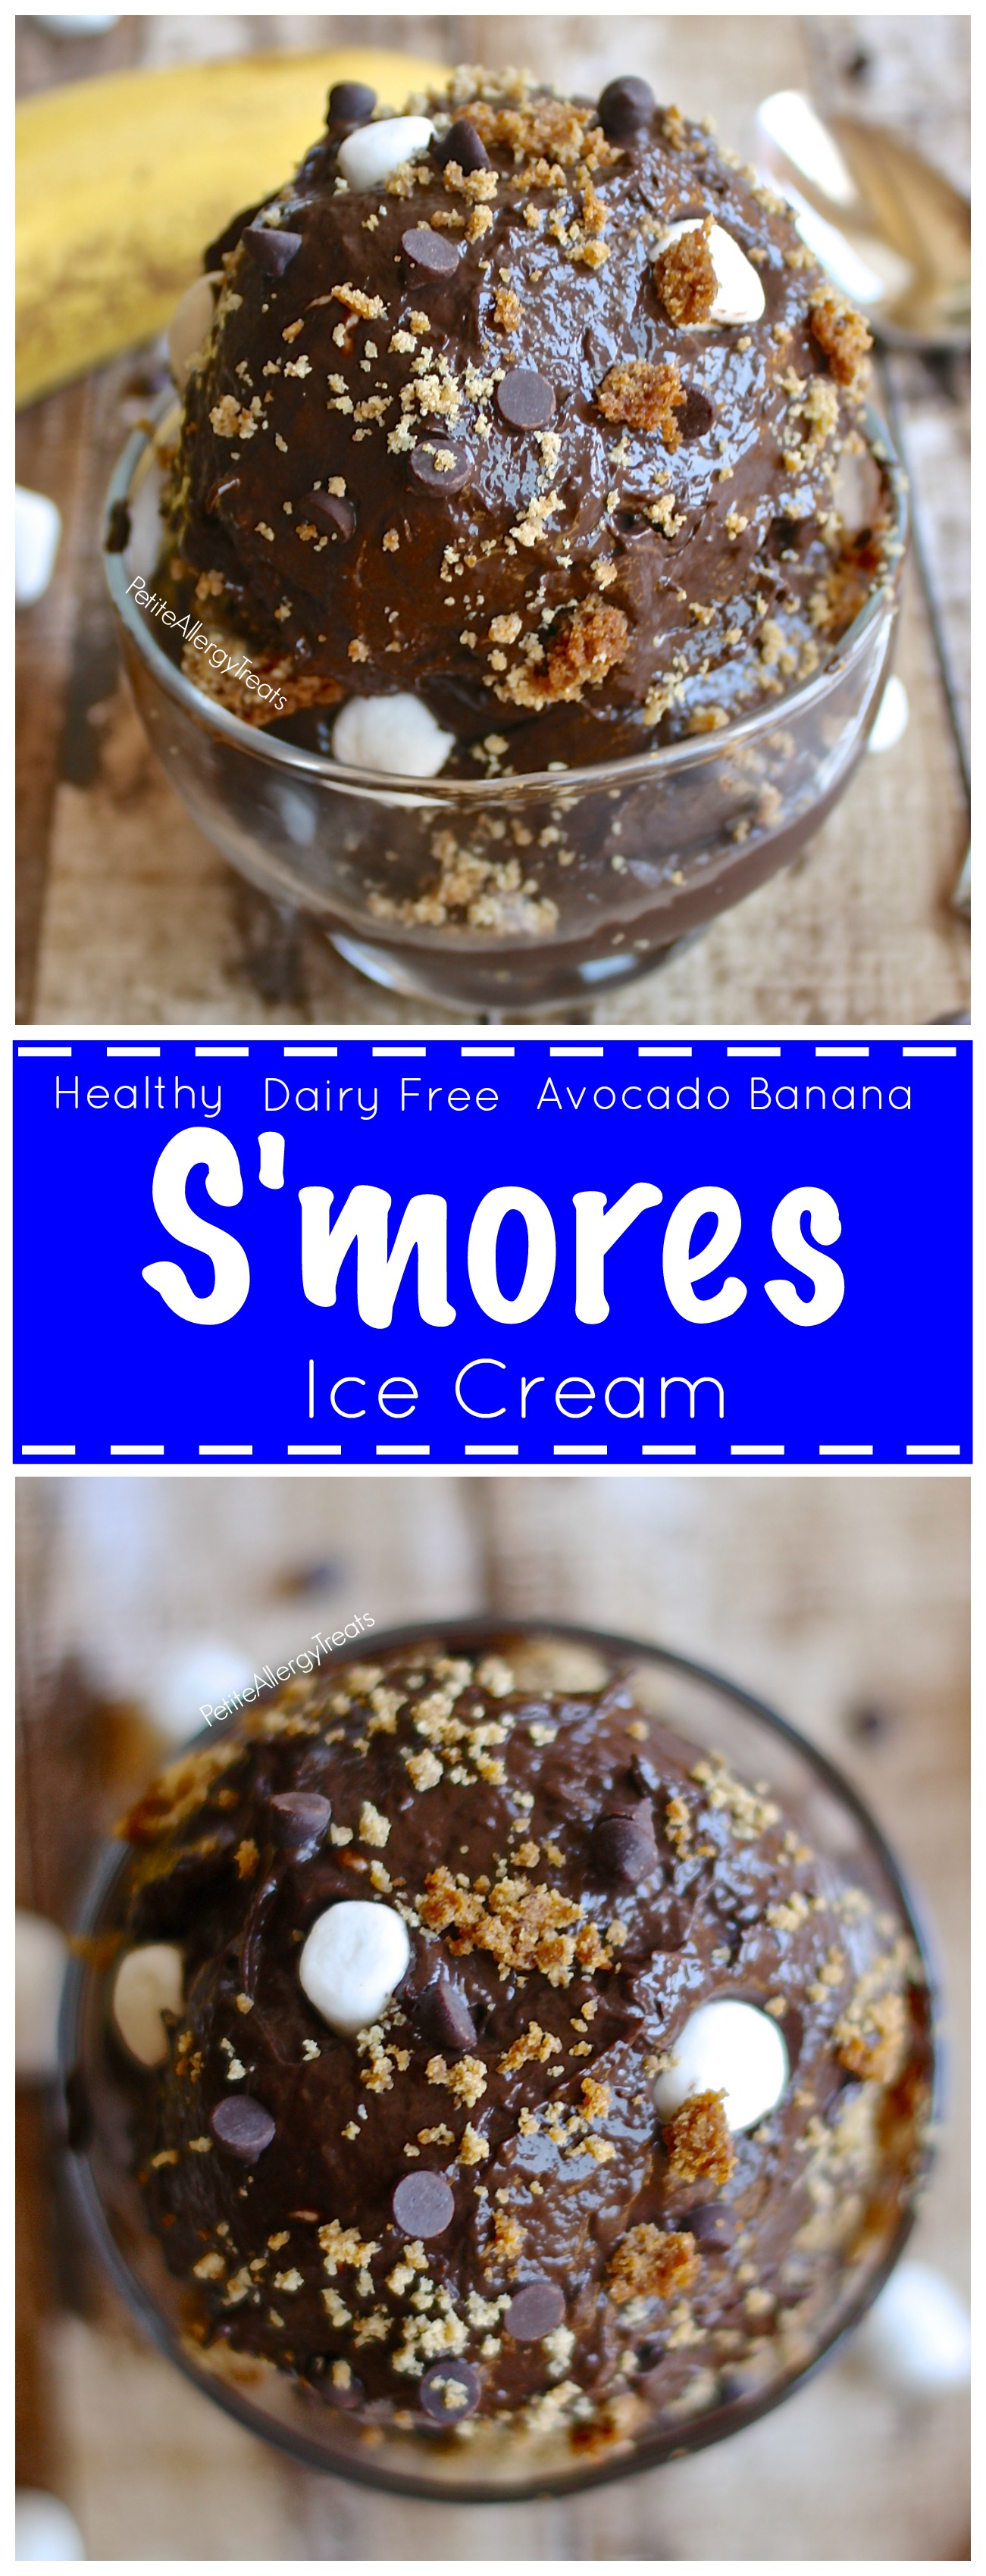 Healthy S'mores Ice Cream Recipe (Dairy Free, Gluten Free Vegan option) Healthy S'mores ice cream made with avocado and banana